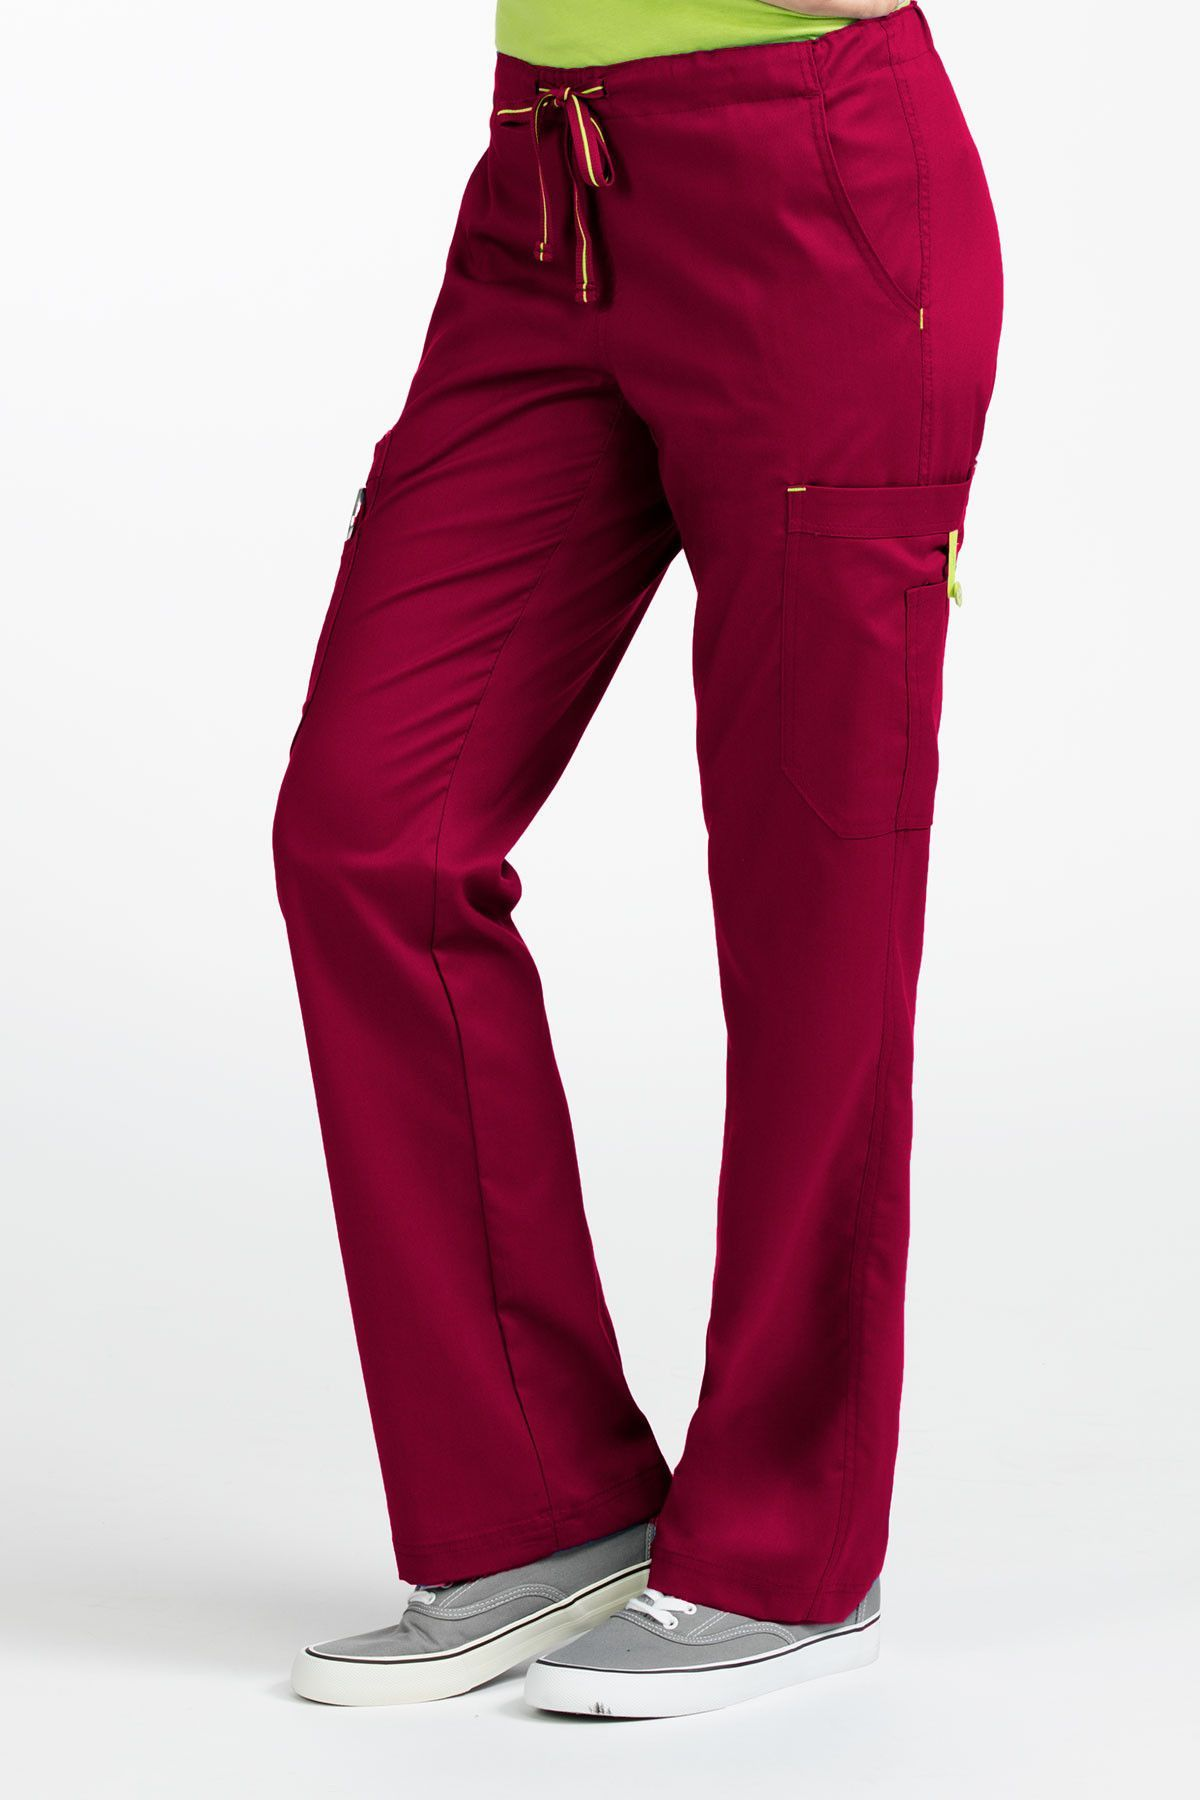 ee092b9e578 Vivi by Med Couture Gabby Pant - 5726 | Products | Pants, Scrubs ...